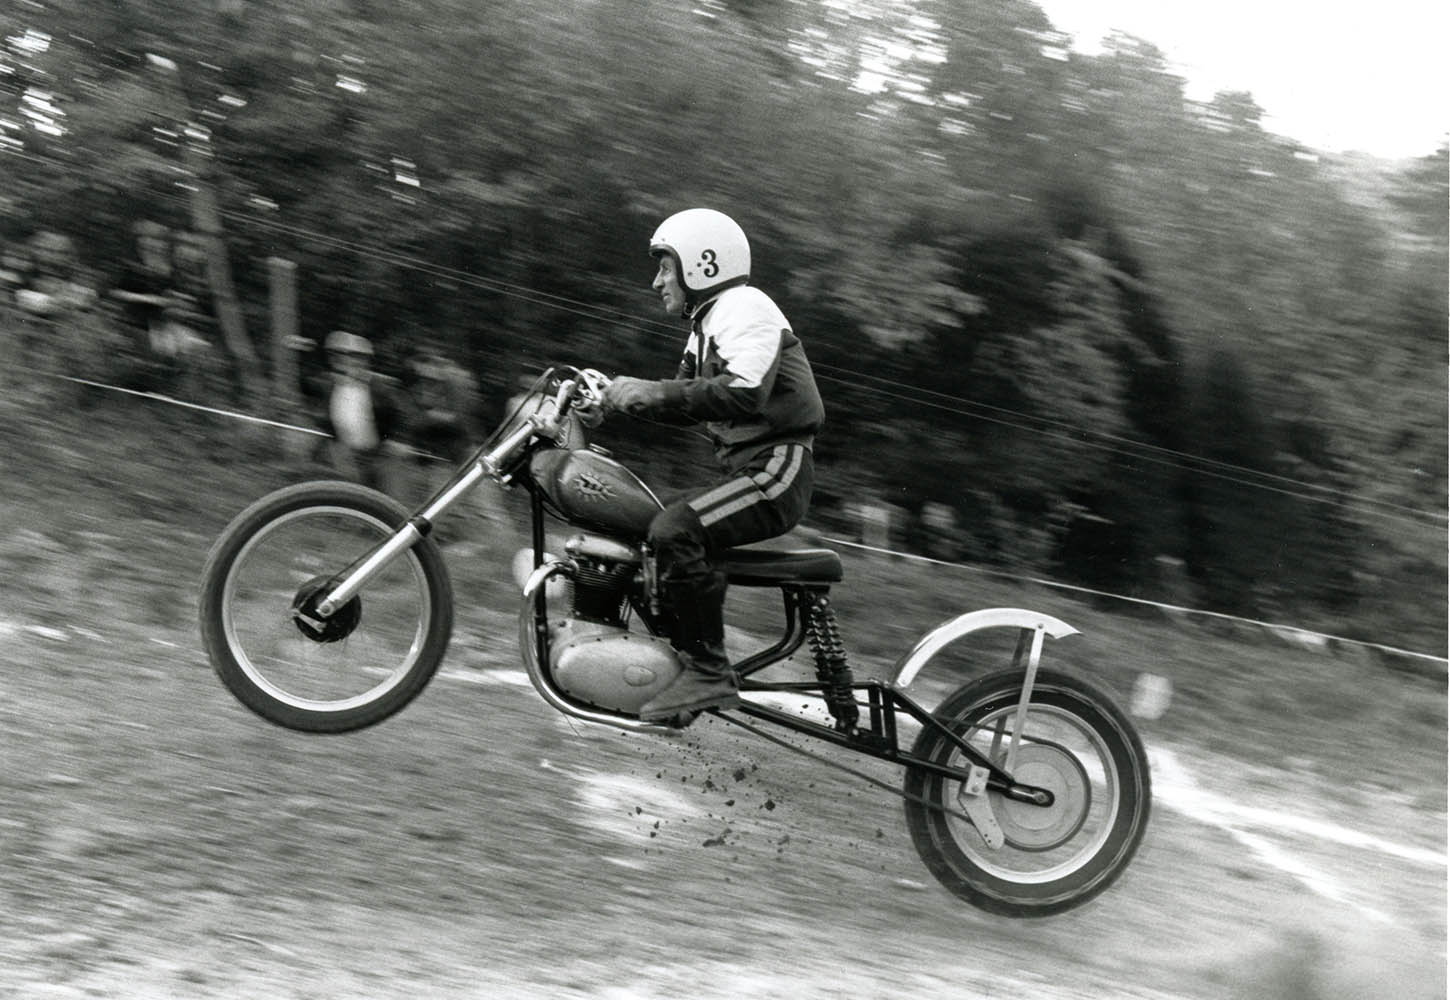 AMA Motorcycle Hall of Famer Earl Bowlby riding a BSA in a hillclimb event